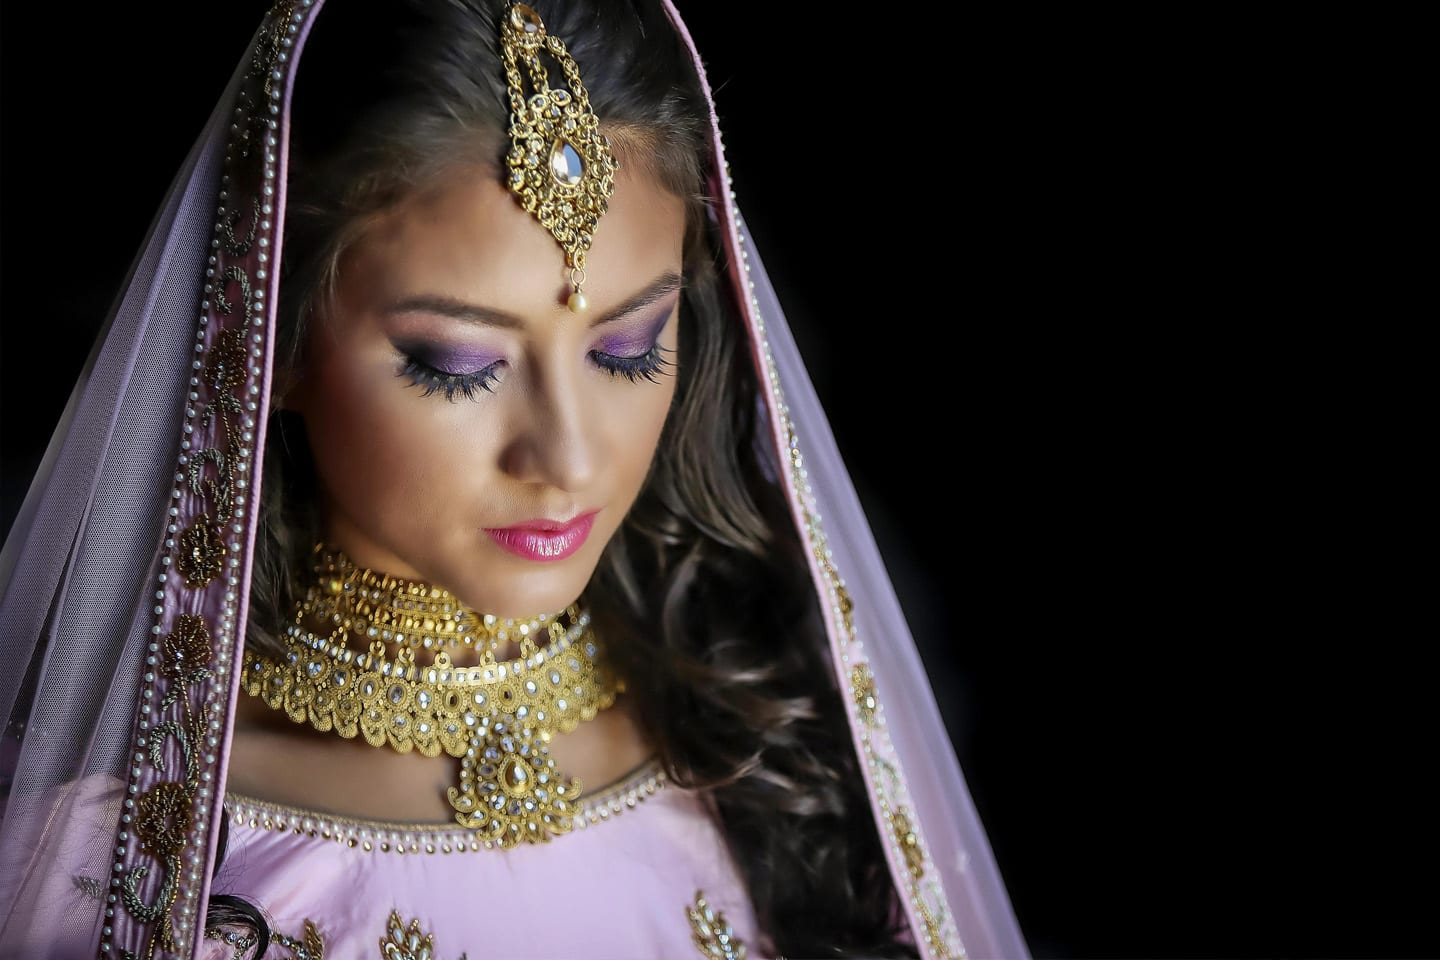 New York Hair & Makeup Artist - Lilly Rivera BridalGal - Luxury Weddings, Couture Fashion, Editorial & Magazine Photo Shoots